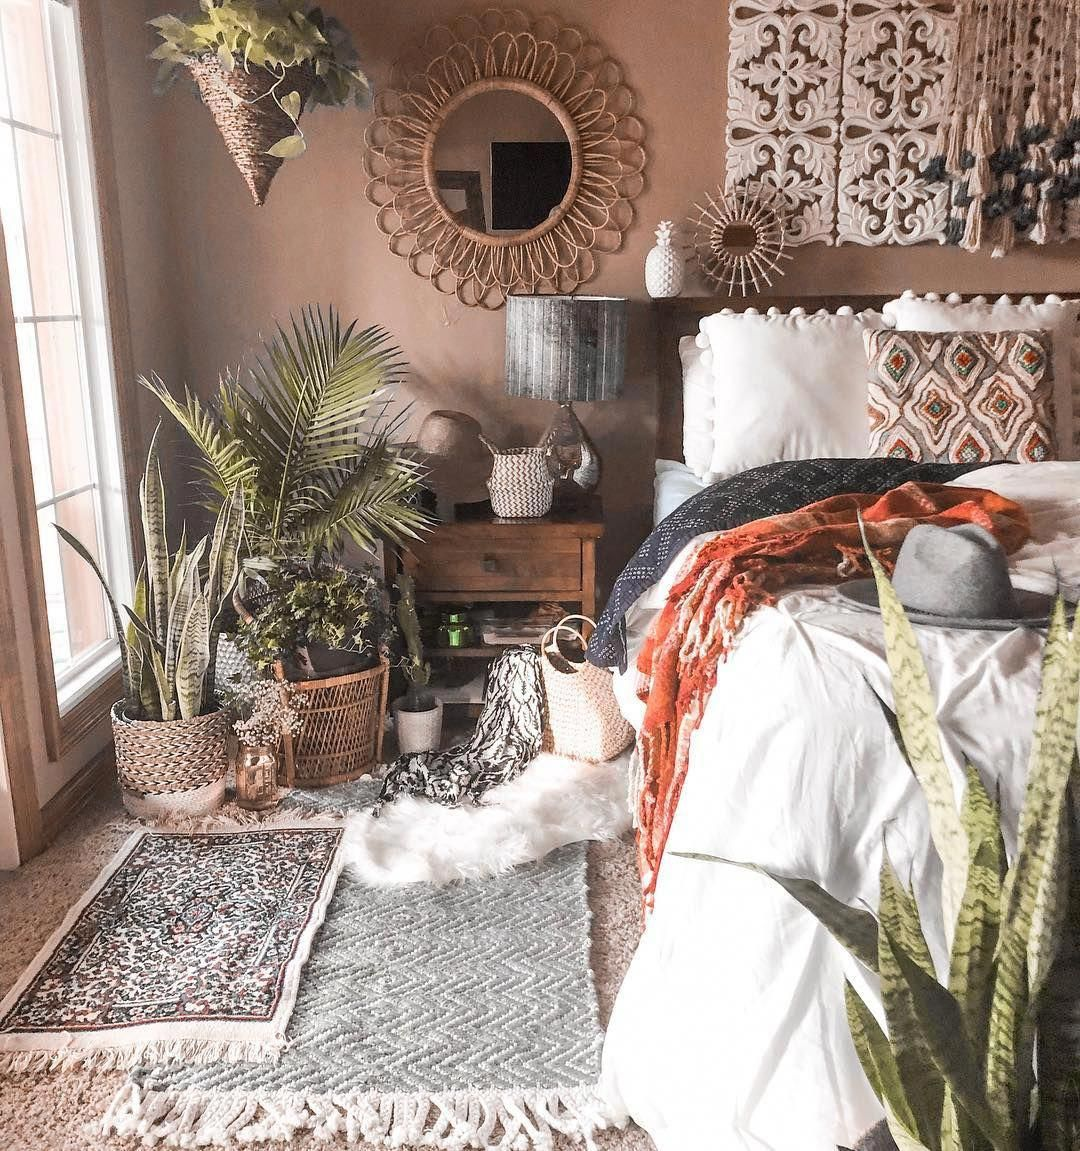 Bohemian Bedroom Decor Has Become One Of The Most Coveted Aesthetics On Pinterest And Instagram But It Bedroom Decor Bohemian Bedroom Decor Home Decor Bedroom